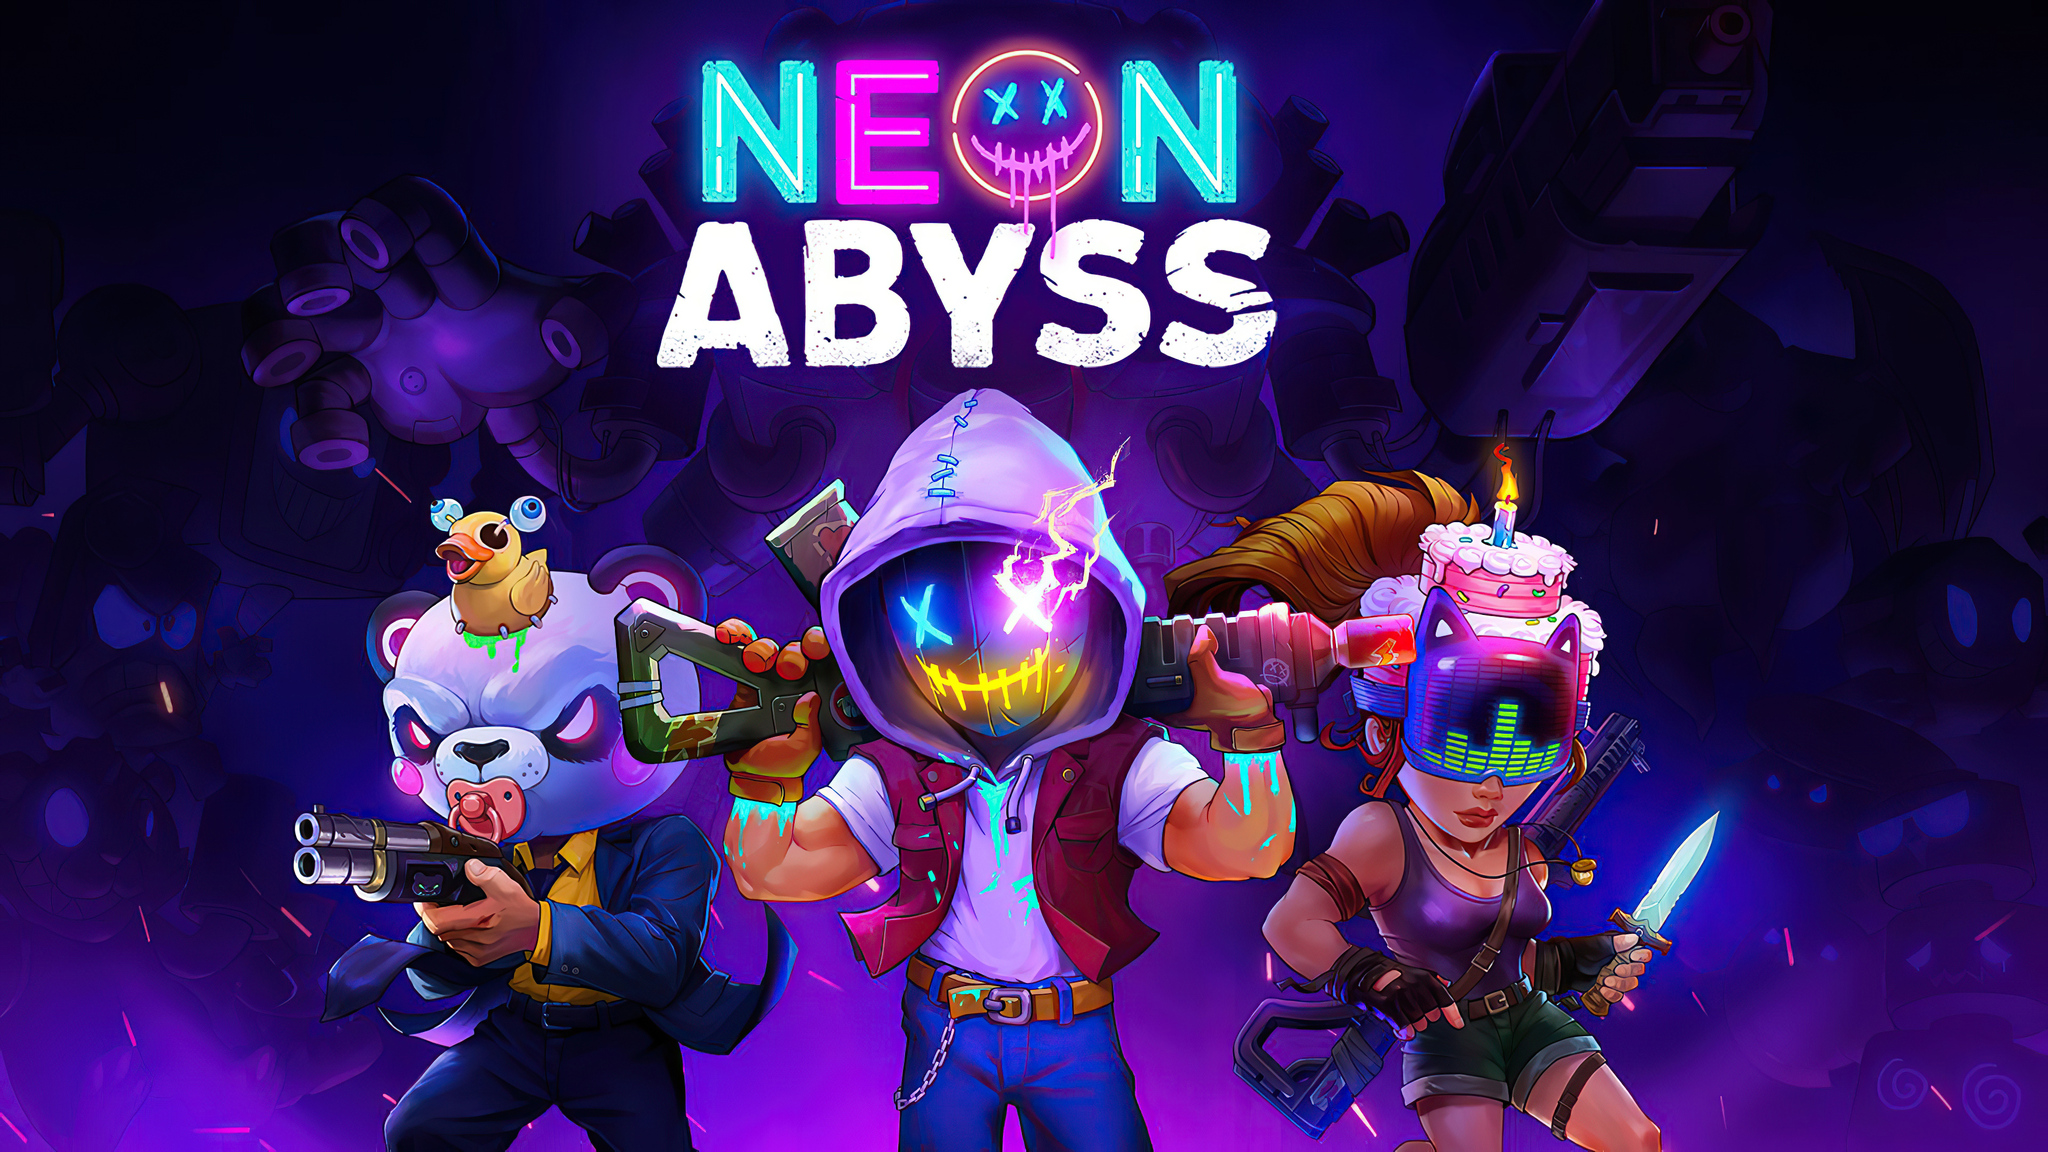 2048x1152 Neon Abyss Game 2020 2048x1152 Resolution Hd 4k Wallpapers Images Backgrounds Photos And Pictures